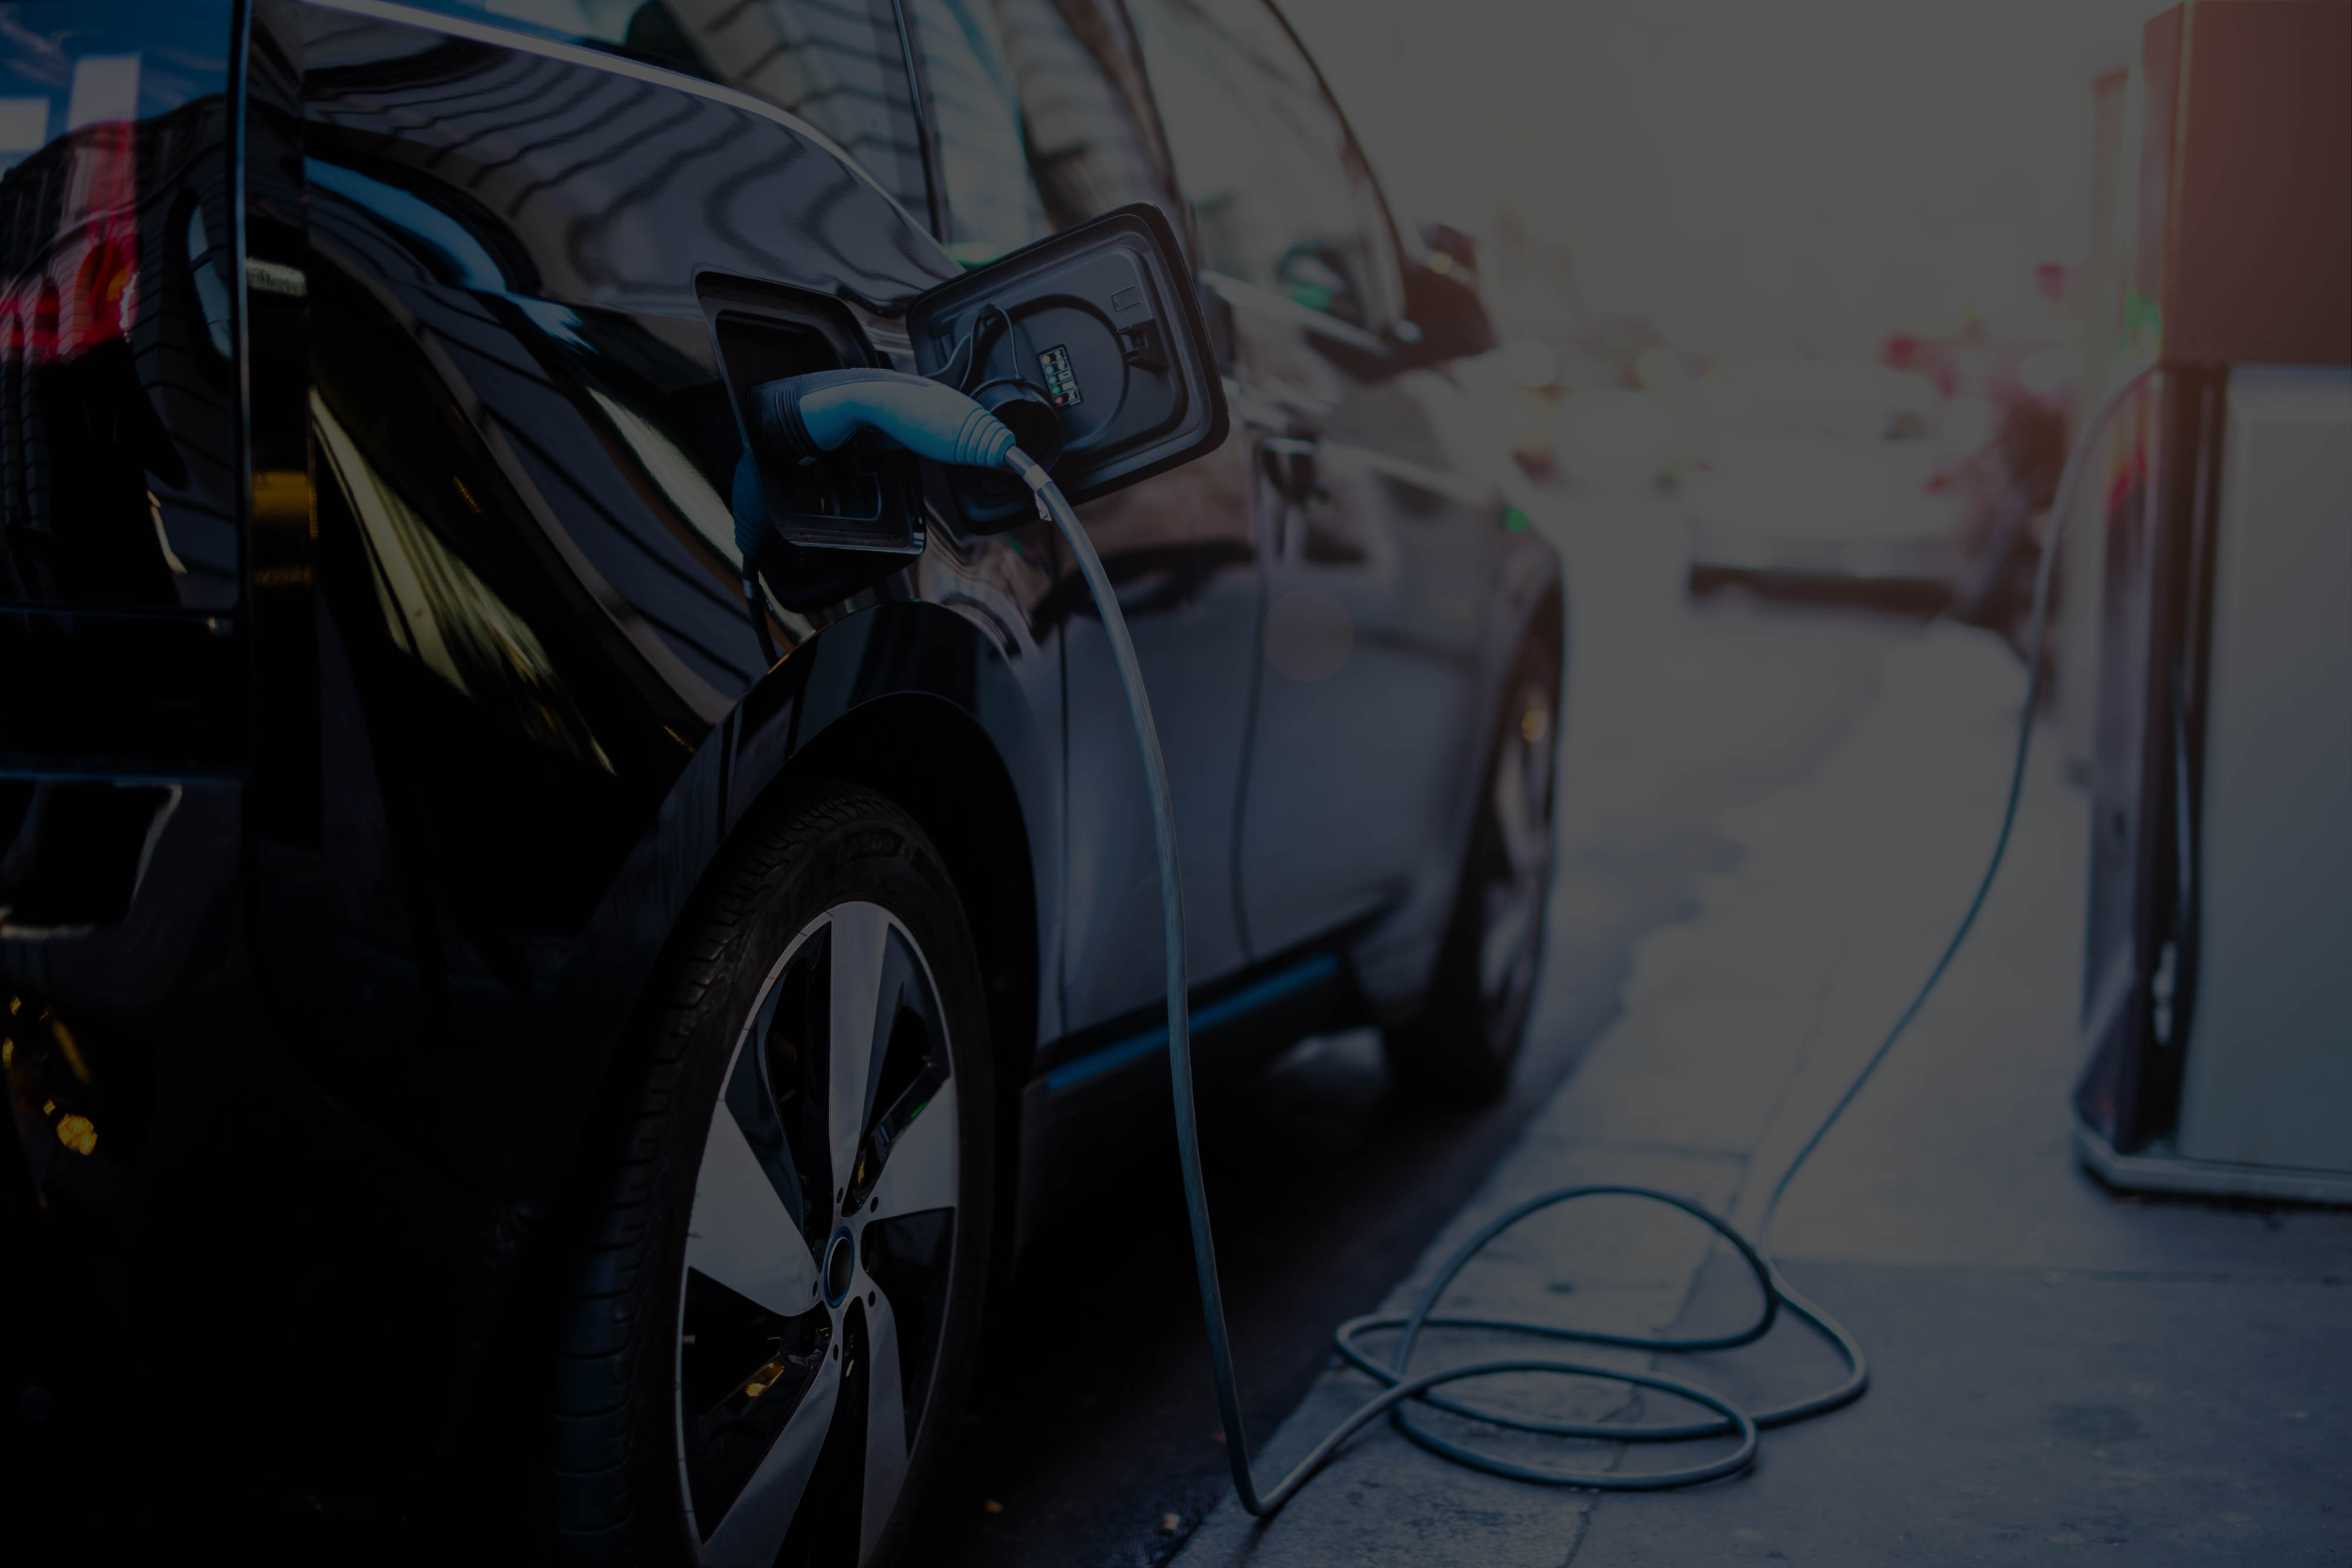 Opinion: Electric Charging Mistakes and Mitigators